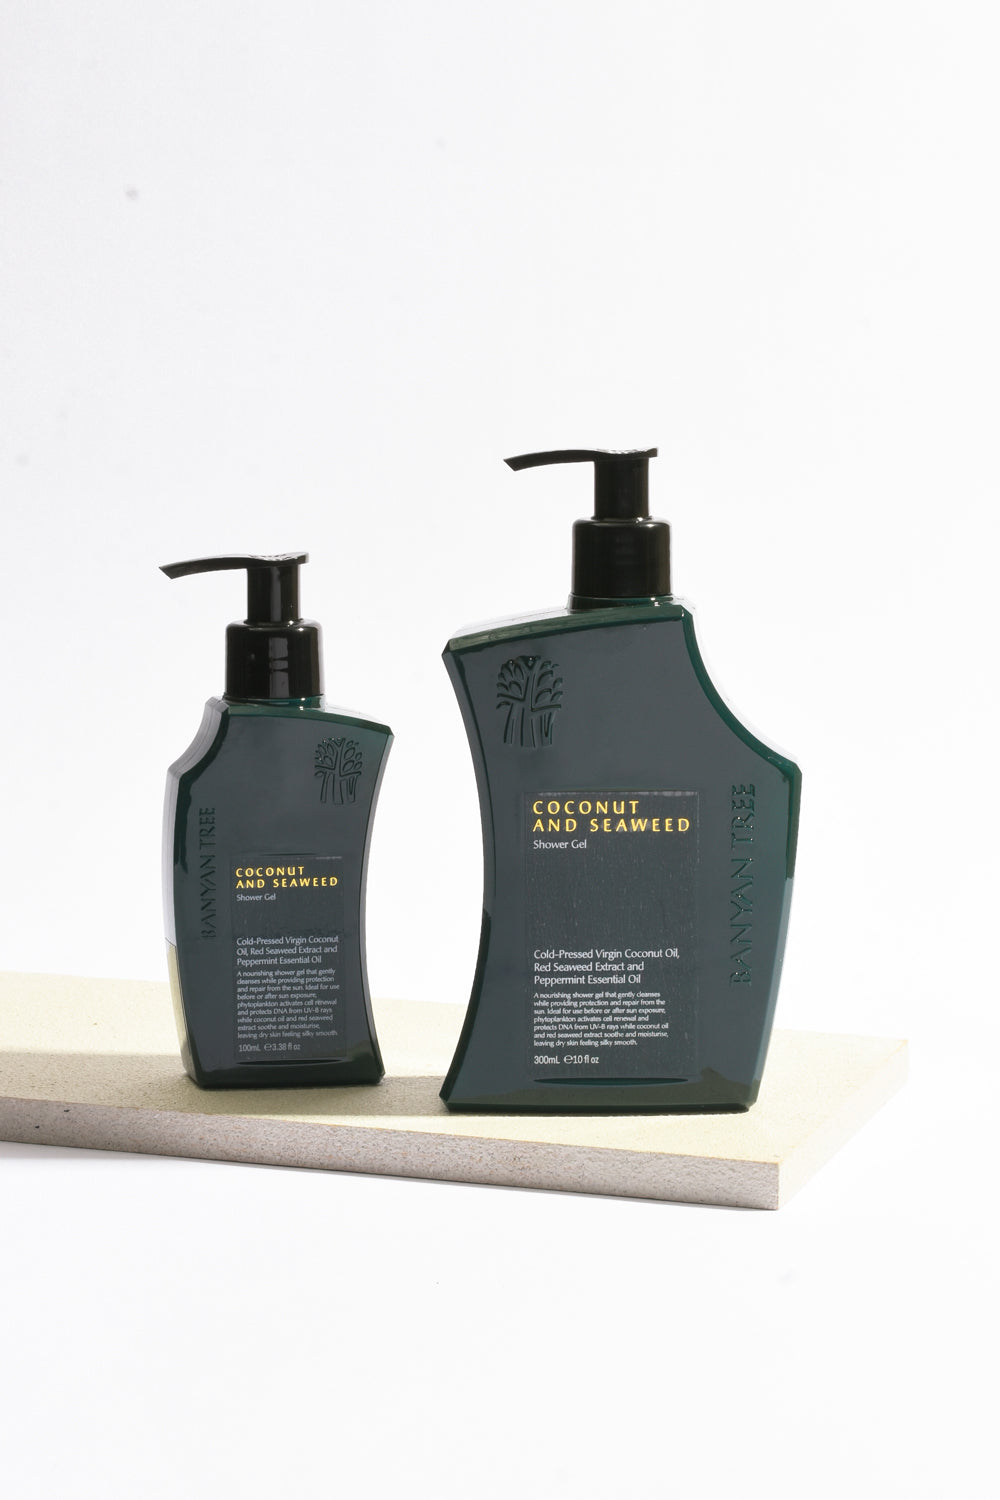 Coconut and Seaweed Shower Gel - Banyan Tree Gallery